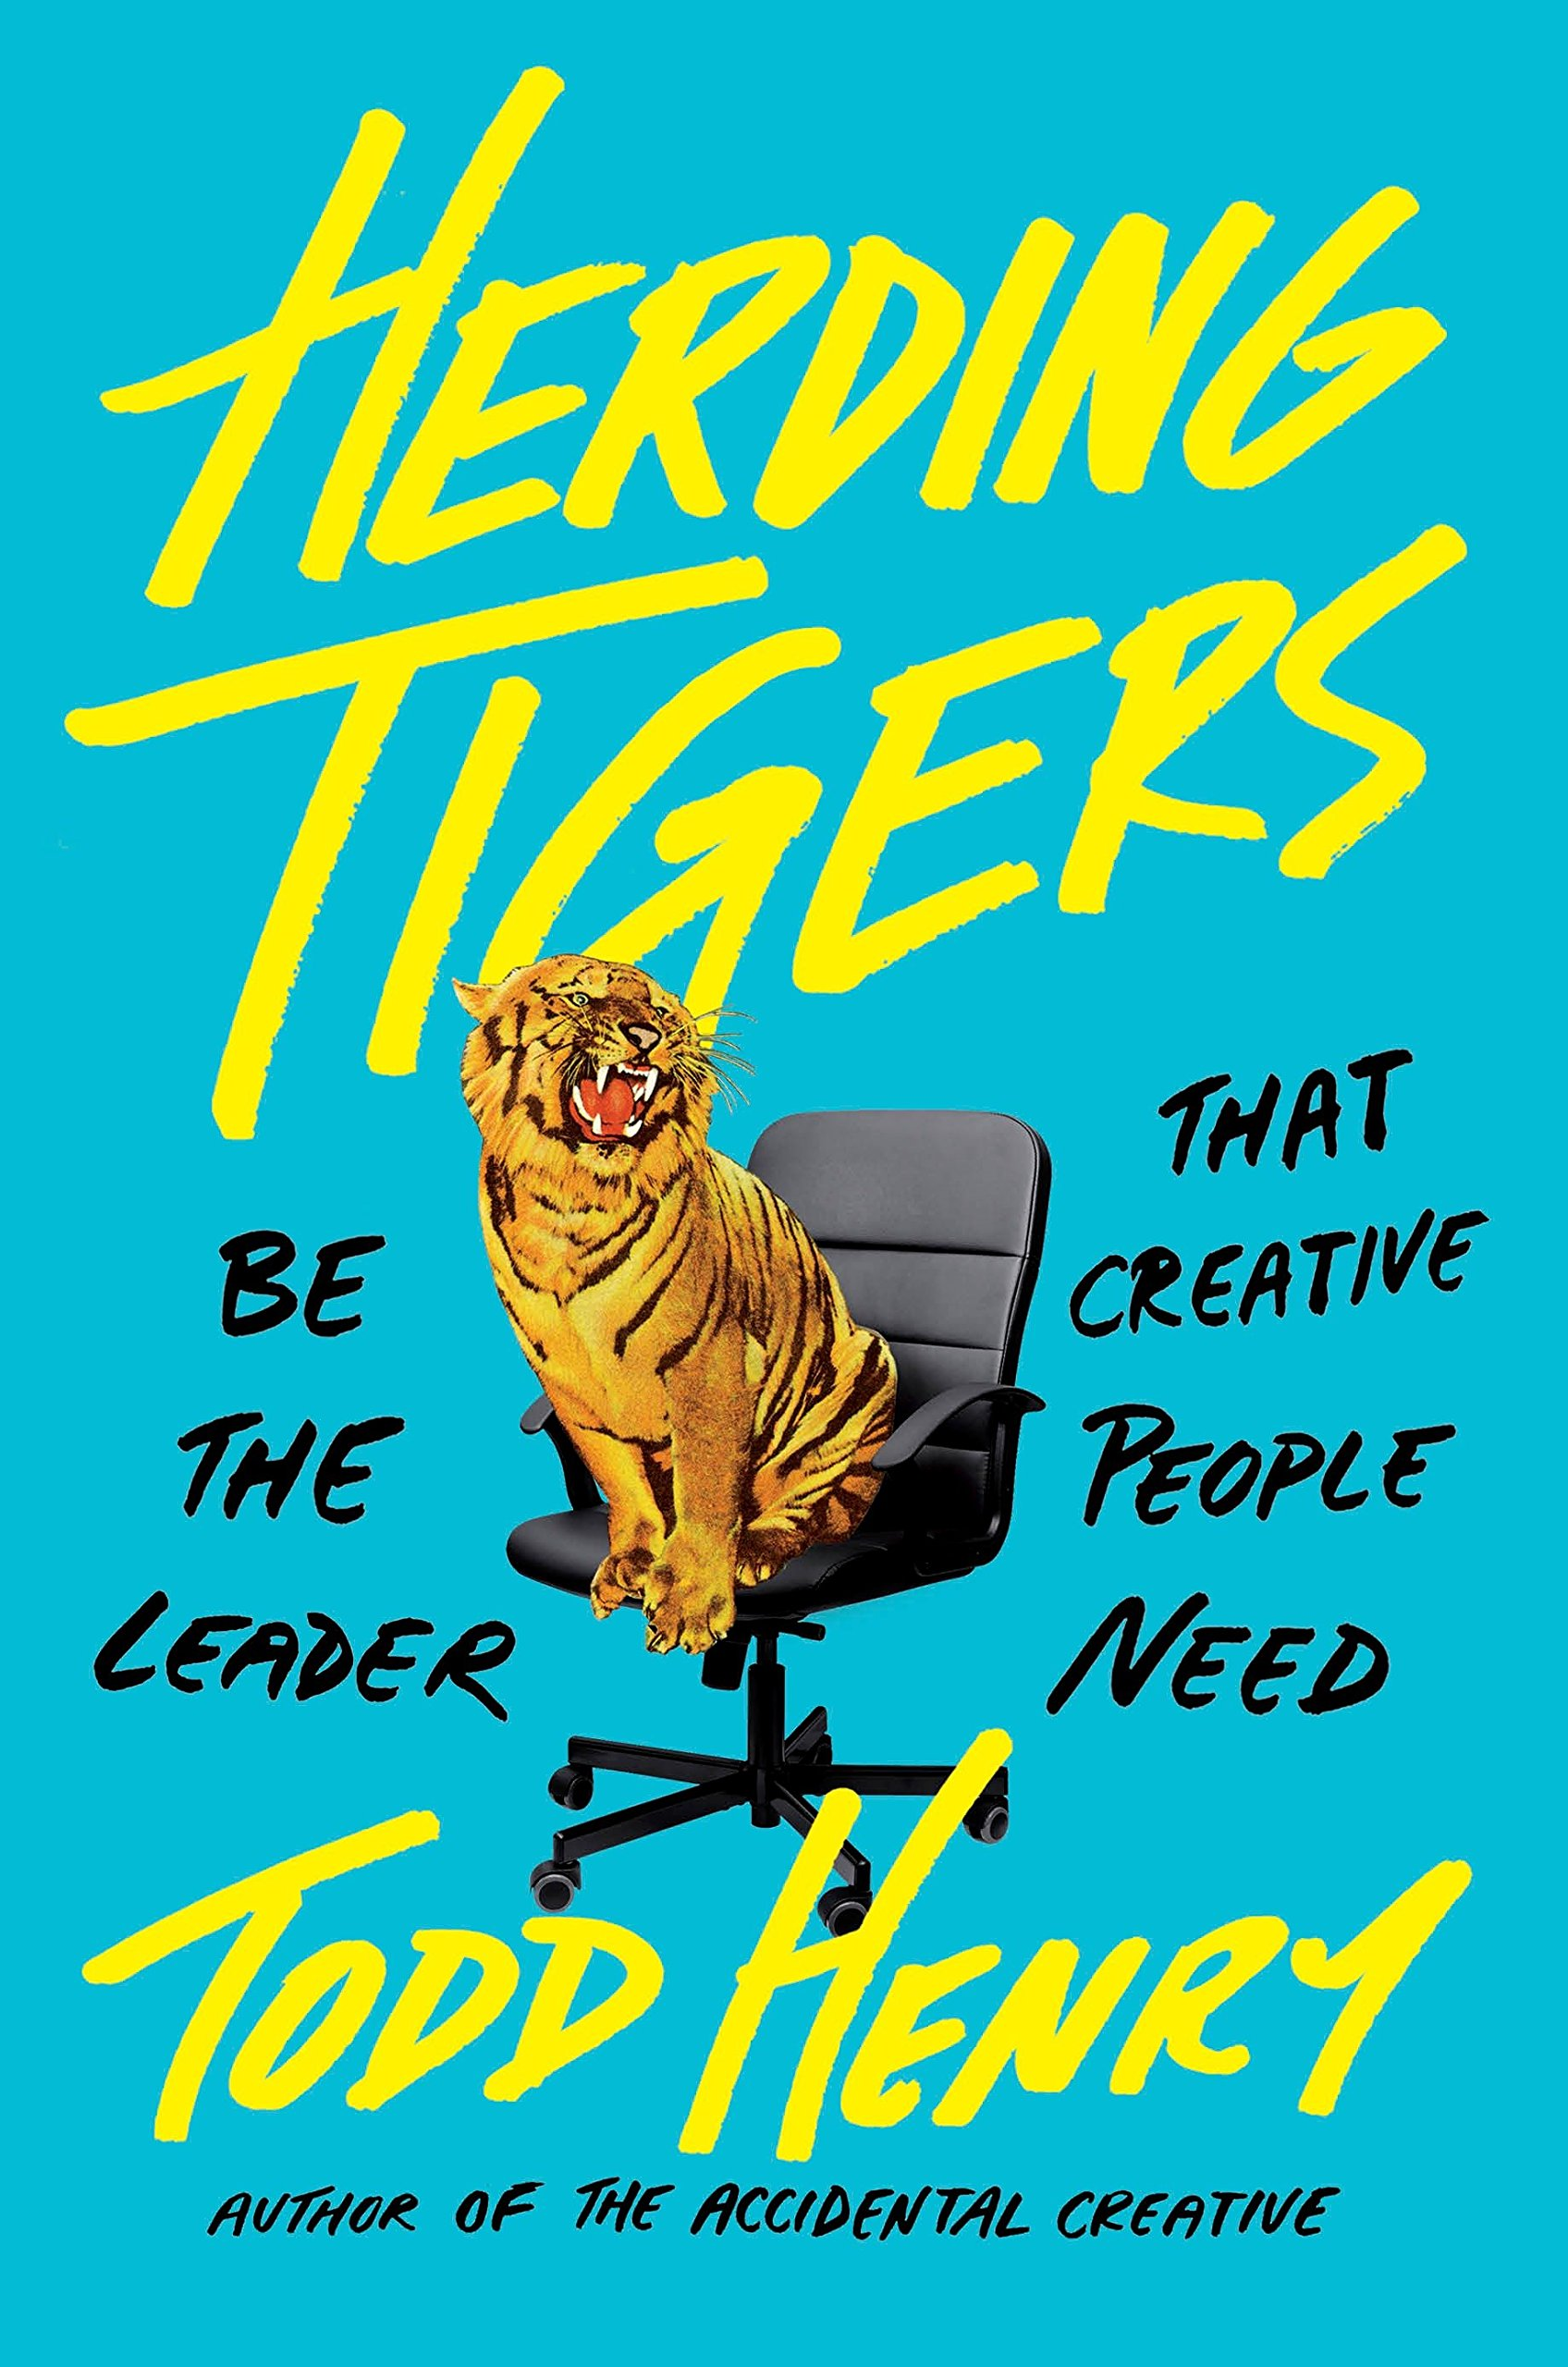 Read Online Herding Tigers: Be the Leader That Creative People Need pdf epub